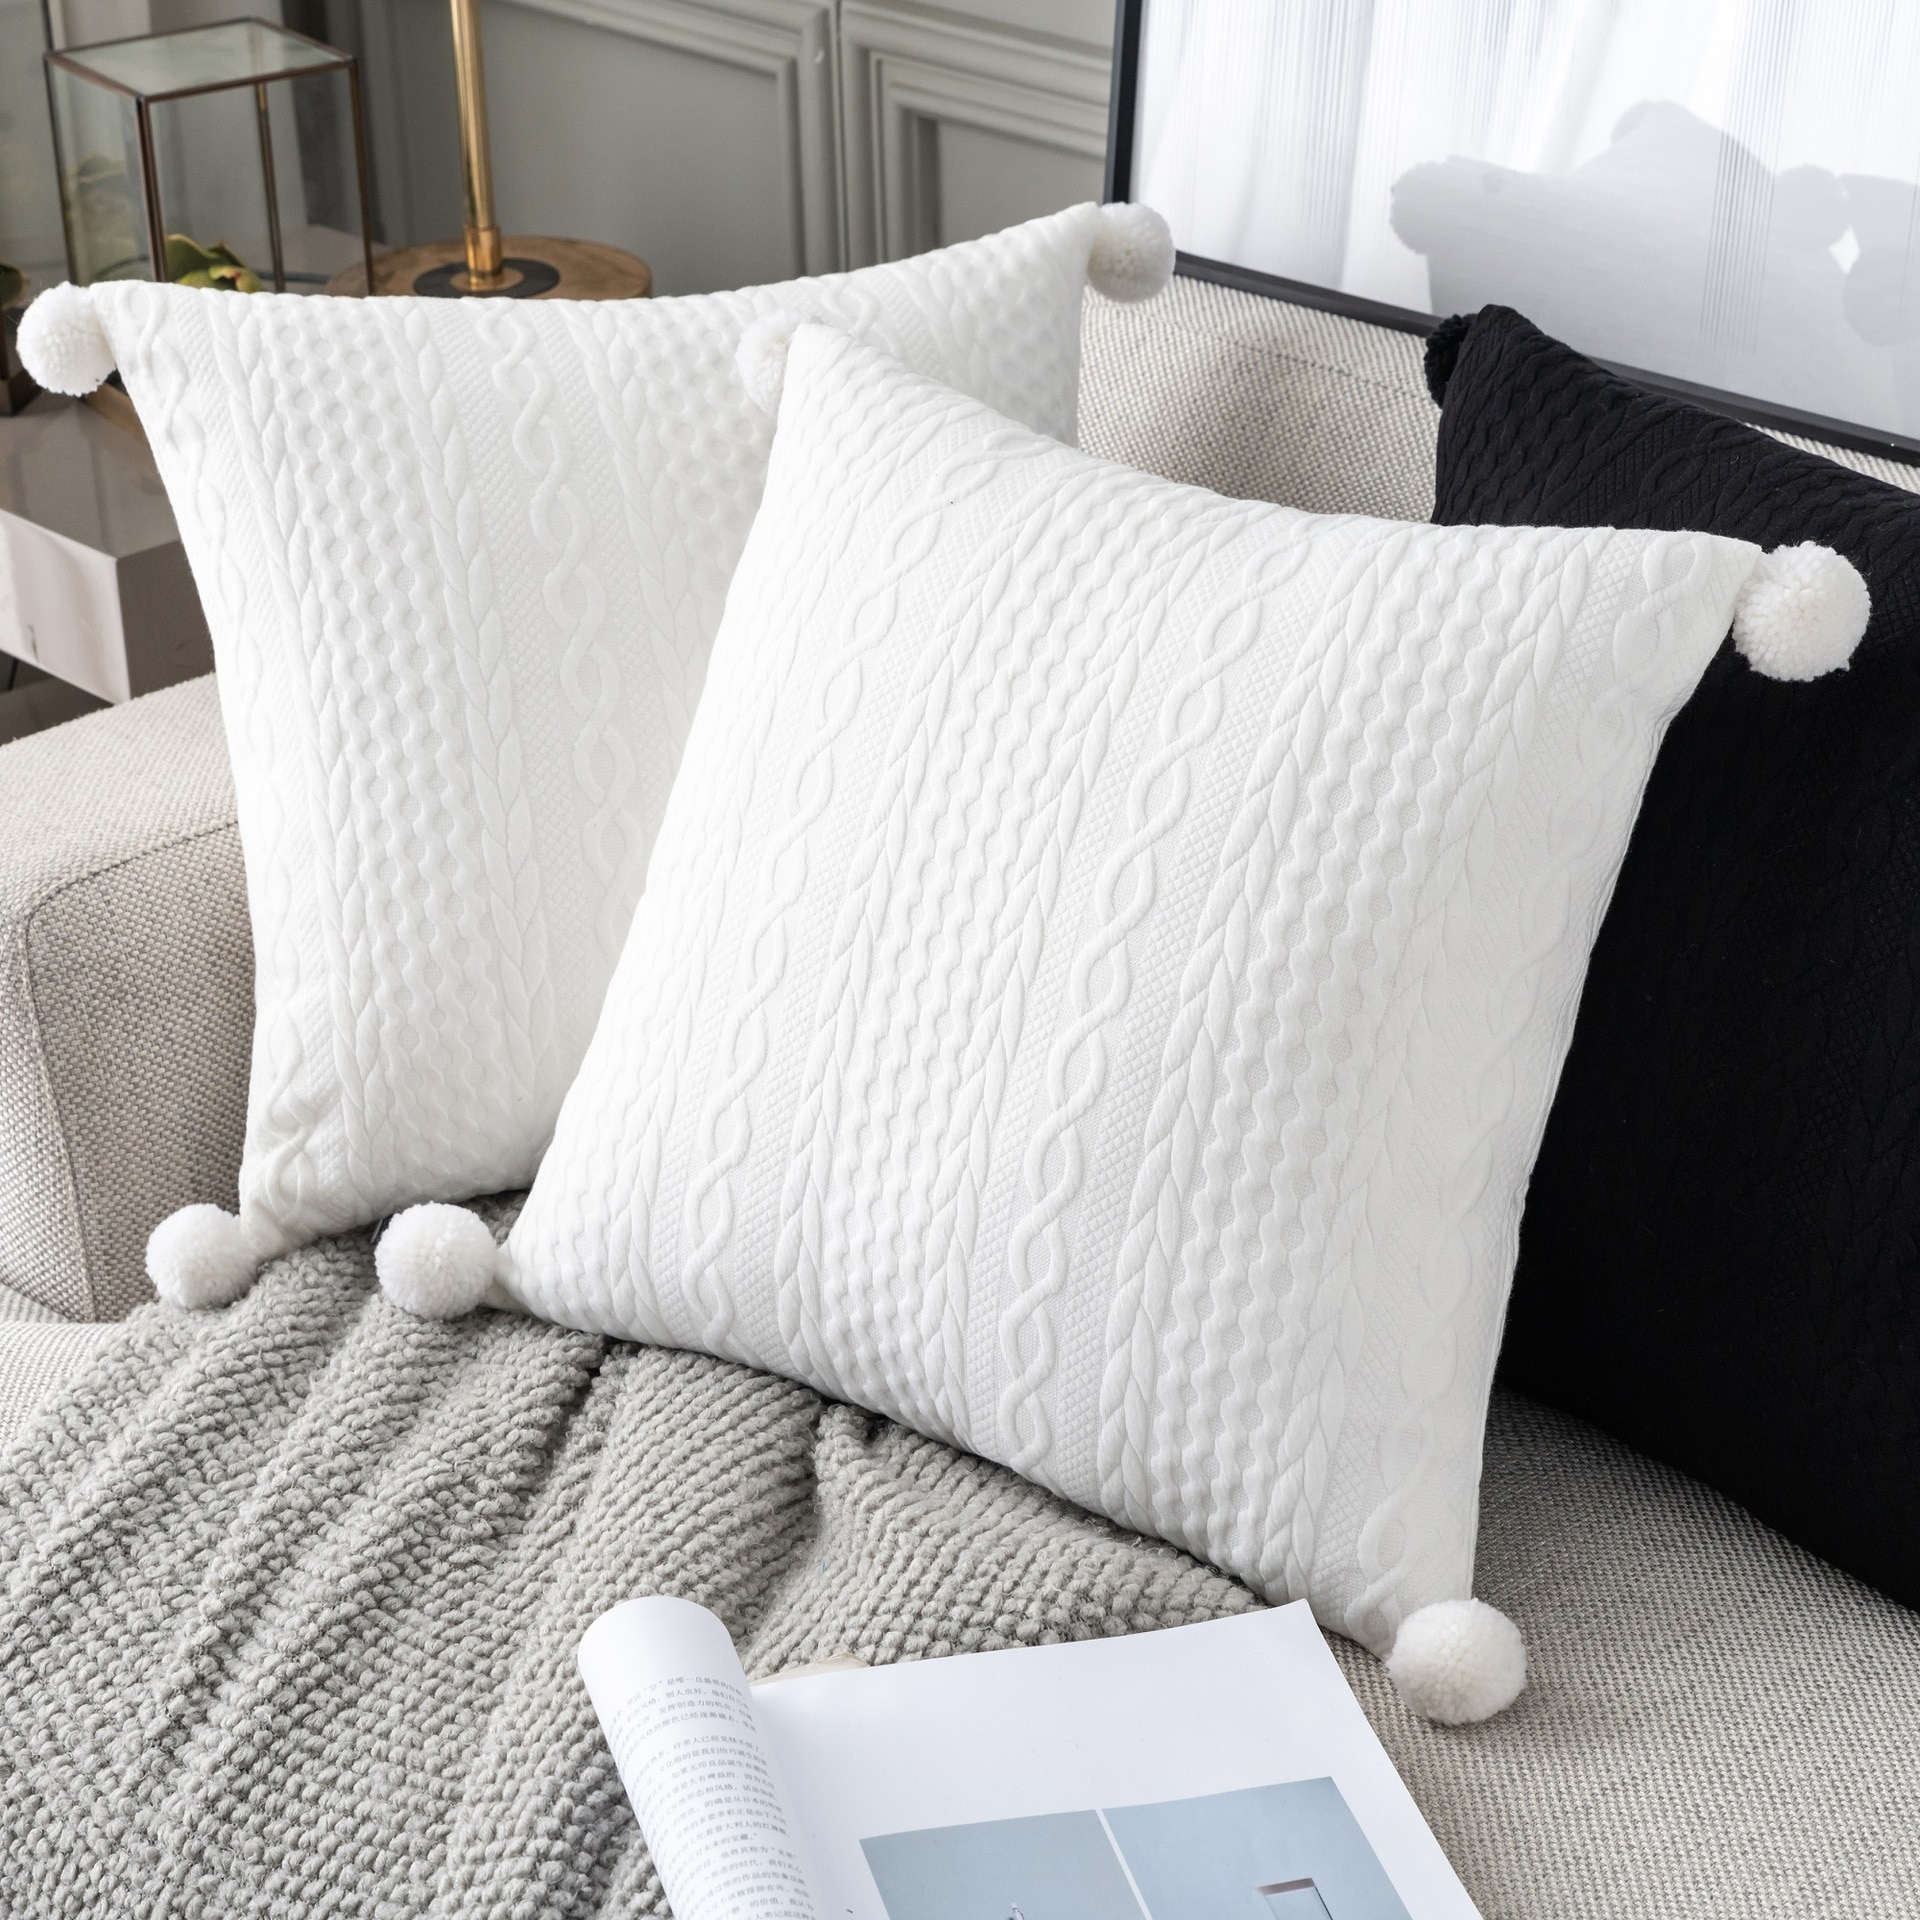 White Knitted with Pompoms Cushion Cover Vintage Grey Black Tassels Pillow Case 45x45cm Soft Home Decorative Pillow Cover